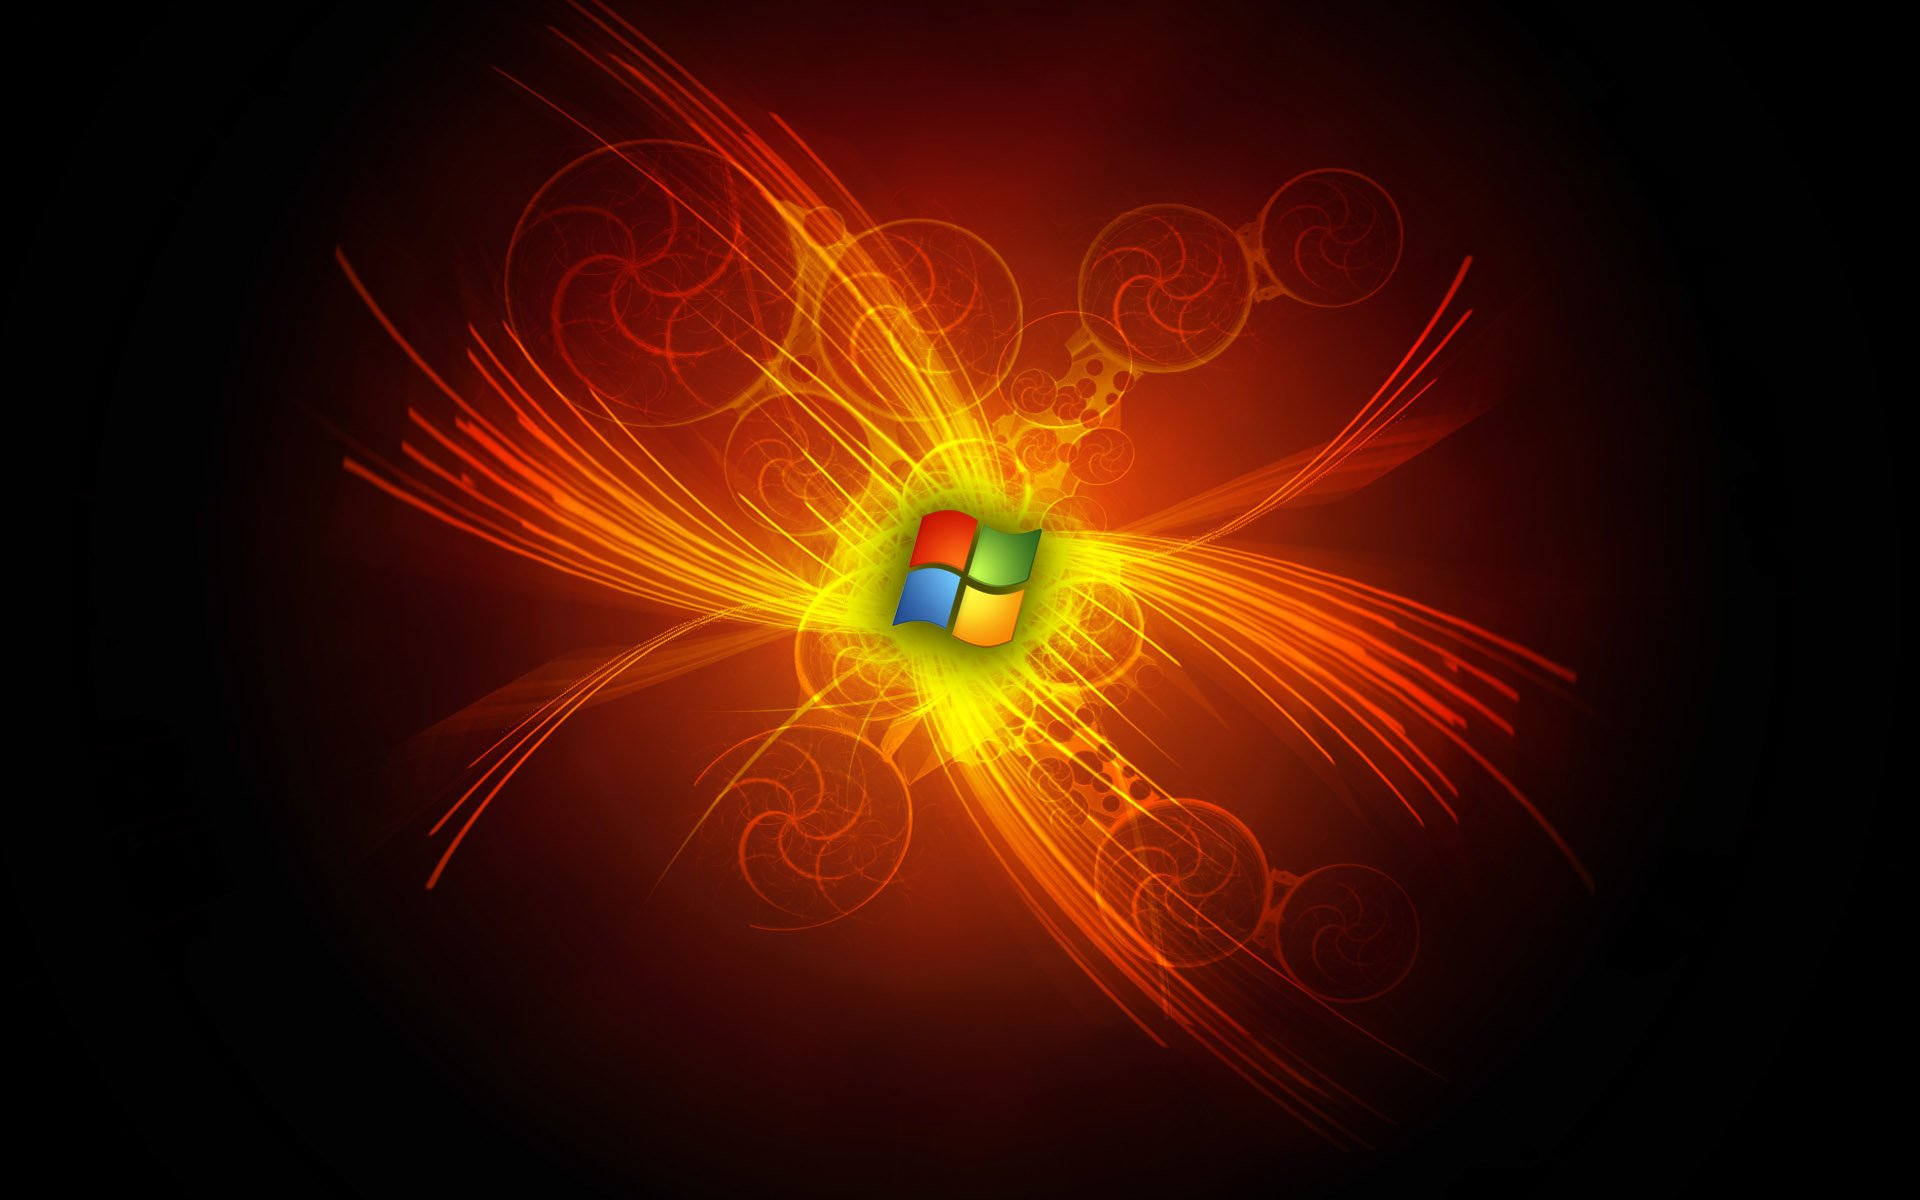 Technology - Windows  Abstrakt Microsoft Logo Windows 7 Eld Flame Bakgrund